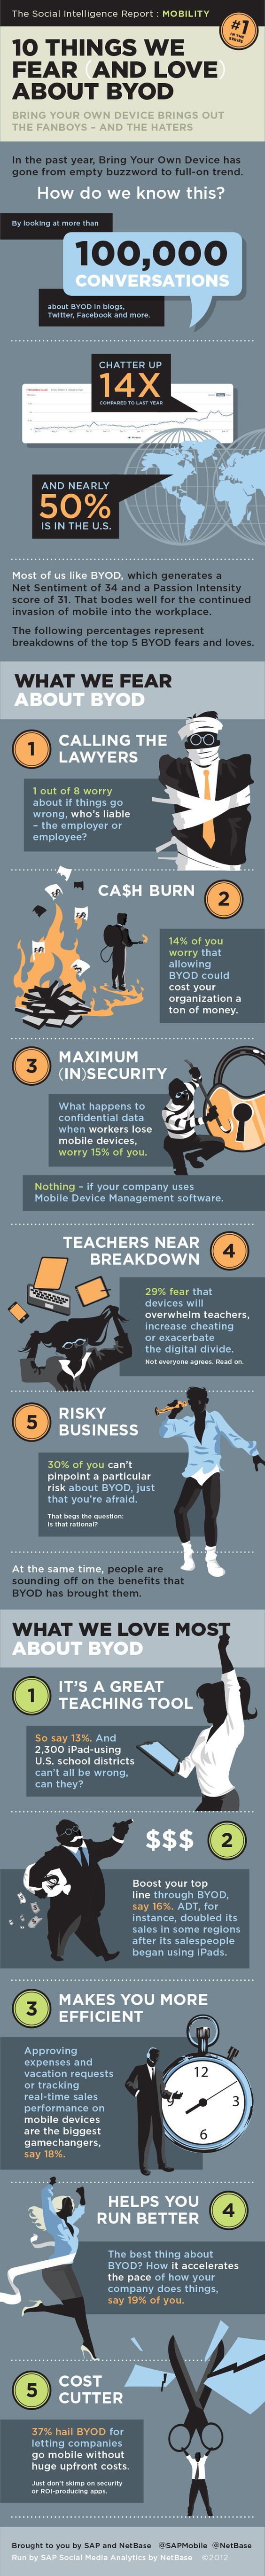 Infographic: The Ten Things We Fear (And Love) About BYOD - Forbes: Byod Infographic, Byod Top, Education Infographics, Sap Infographic, Infographic Byod, 10 Things, Interesting Infographic